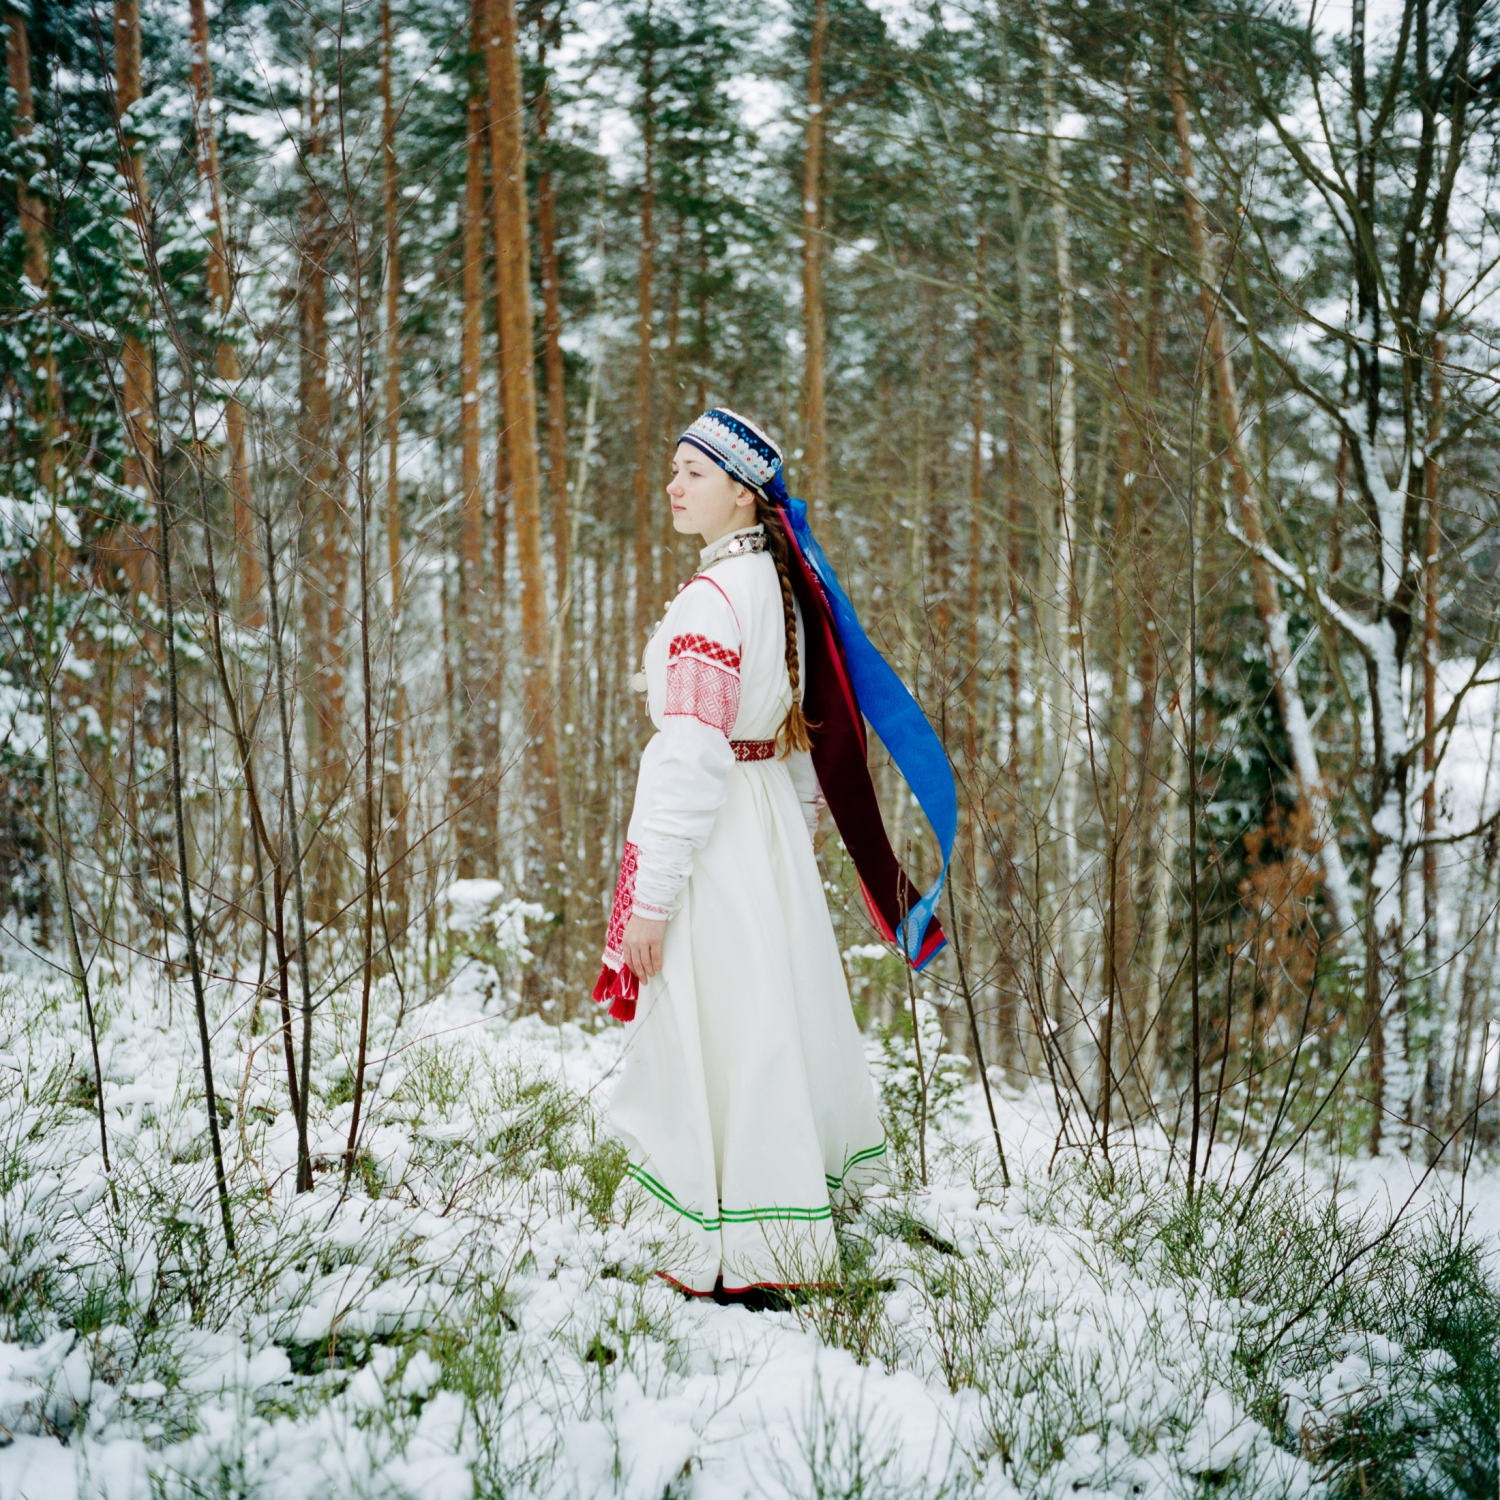 "In Obinitsa, Estonia, a young Seto girl named Liisi Lõiv pauses wearing a traditional costume in her grandparents' garden. Seto women typically have both an old costume and a new one. This is an older one—white, with long, rolled sleeves. The clothing reveals other details too. A married woman must cover her hair, while an unmarried young woman or girl like Liisi will wear only a garland or a headscarf, leaving her long braid visible. Today Setos wear their traditional clothes only on special occasions. Liisi says she embroidered this costume herself. ""I'm proud of being Seto,"" she says. ""It is where I come from, where I grew up."""